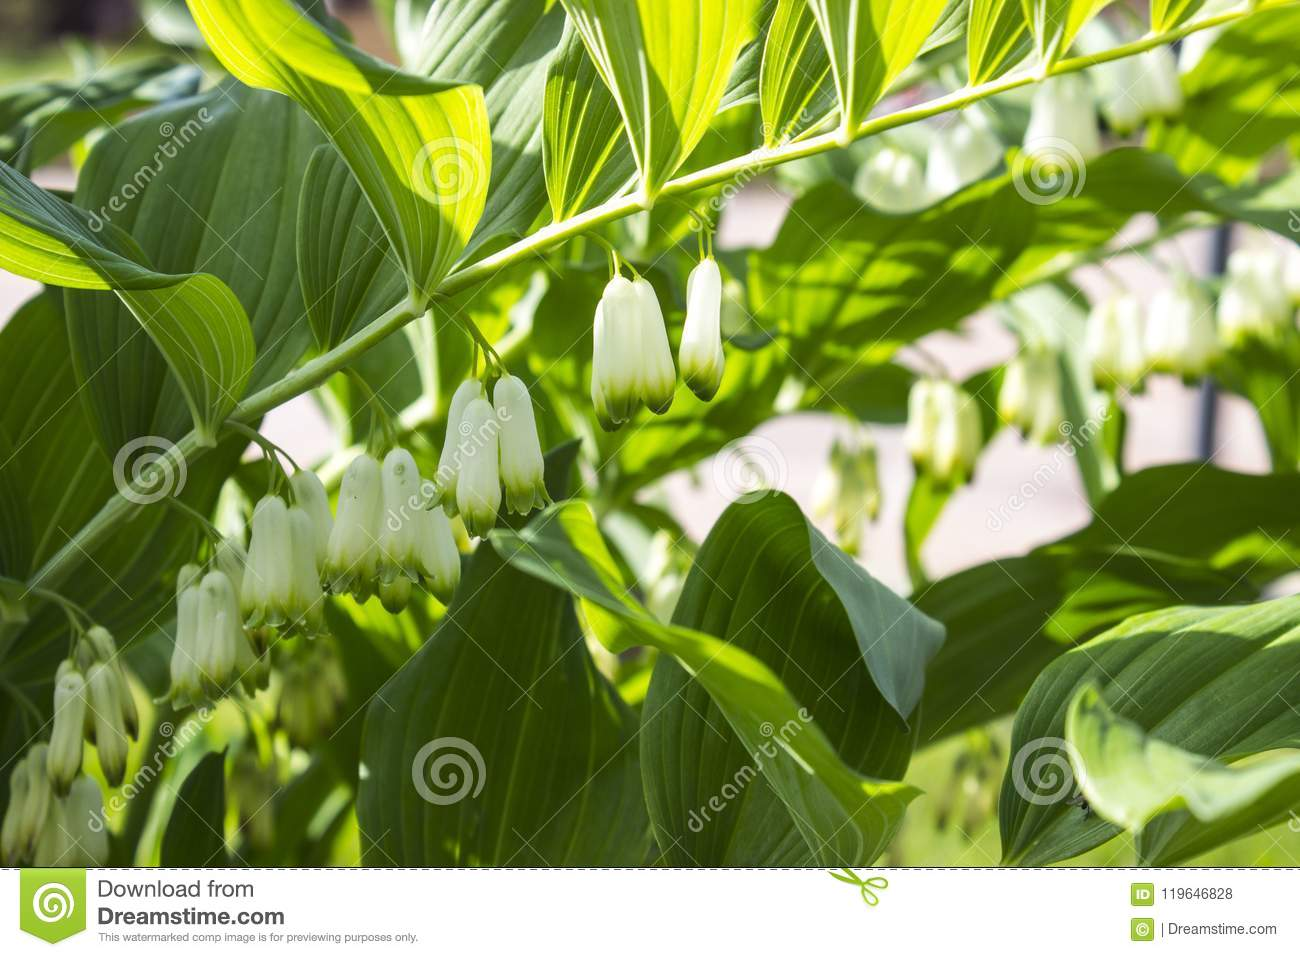 White Flower Background Hd Stock Photo Image Of Earth 119646828